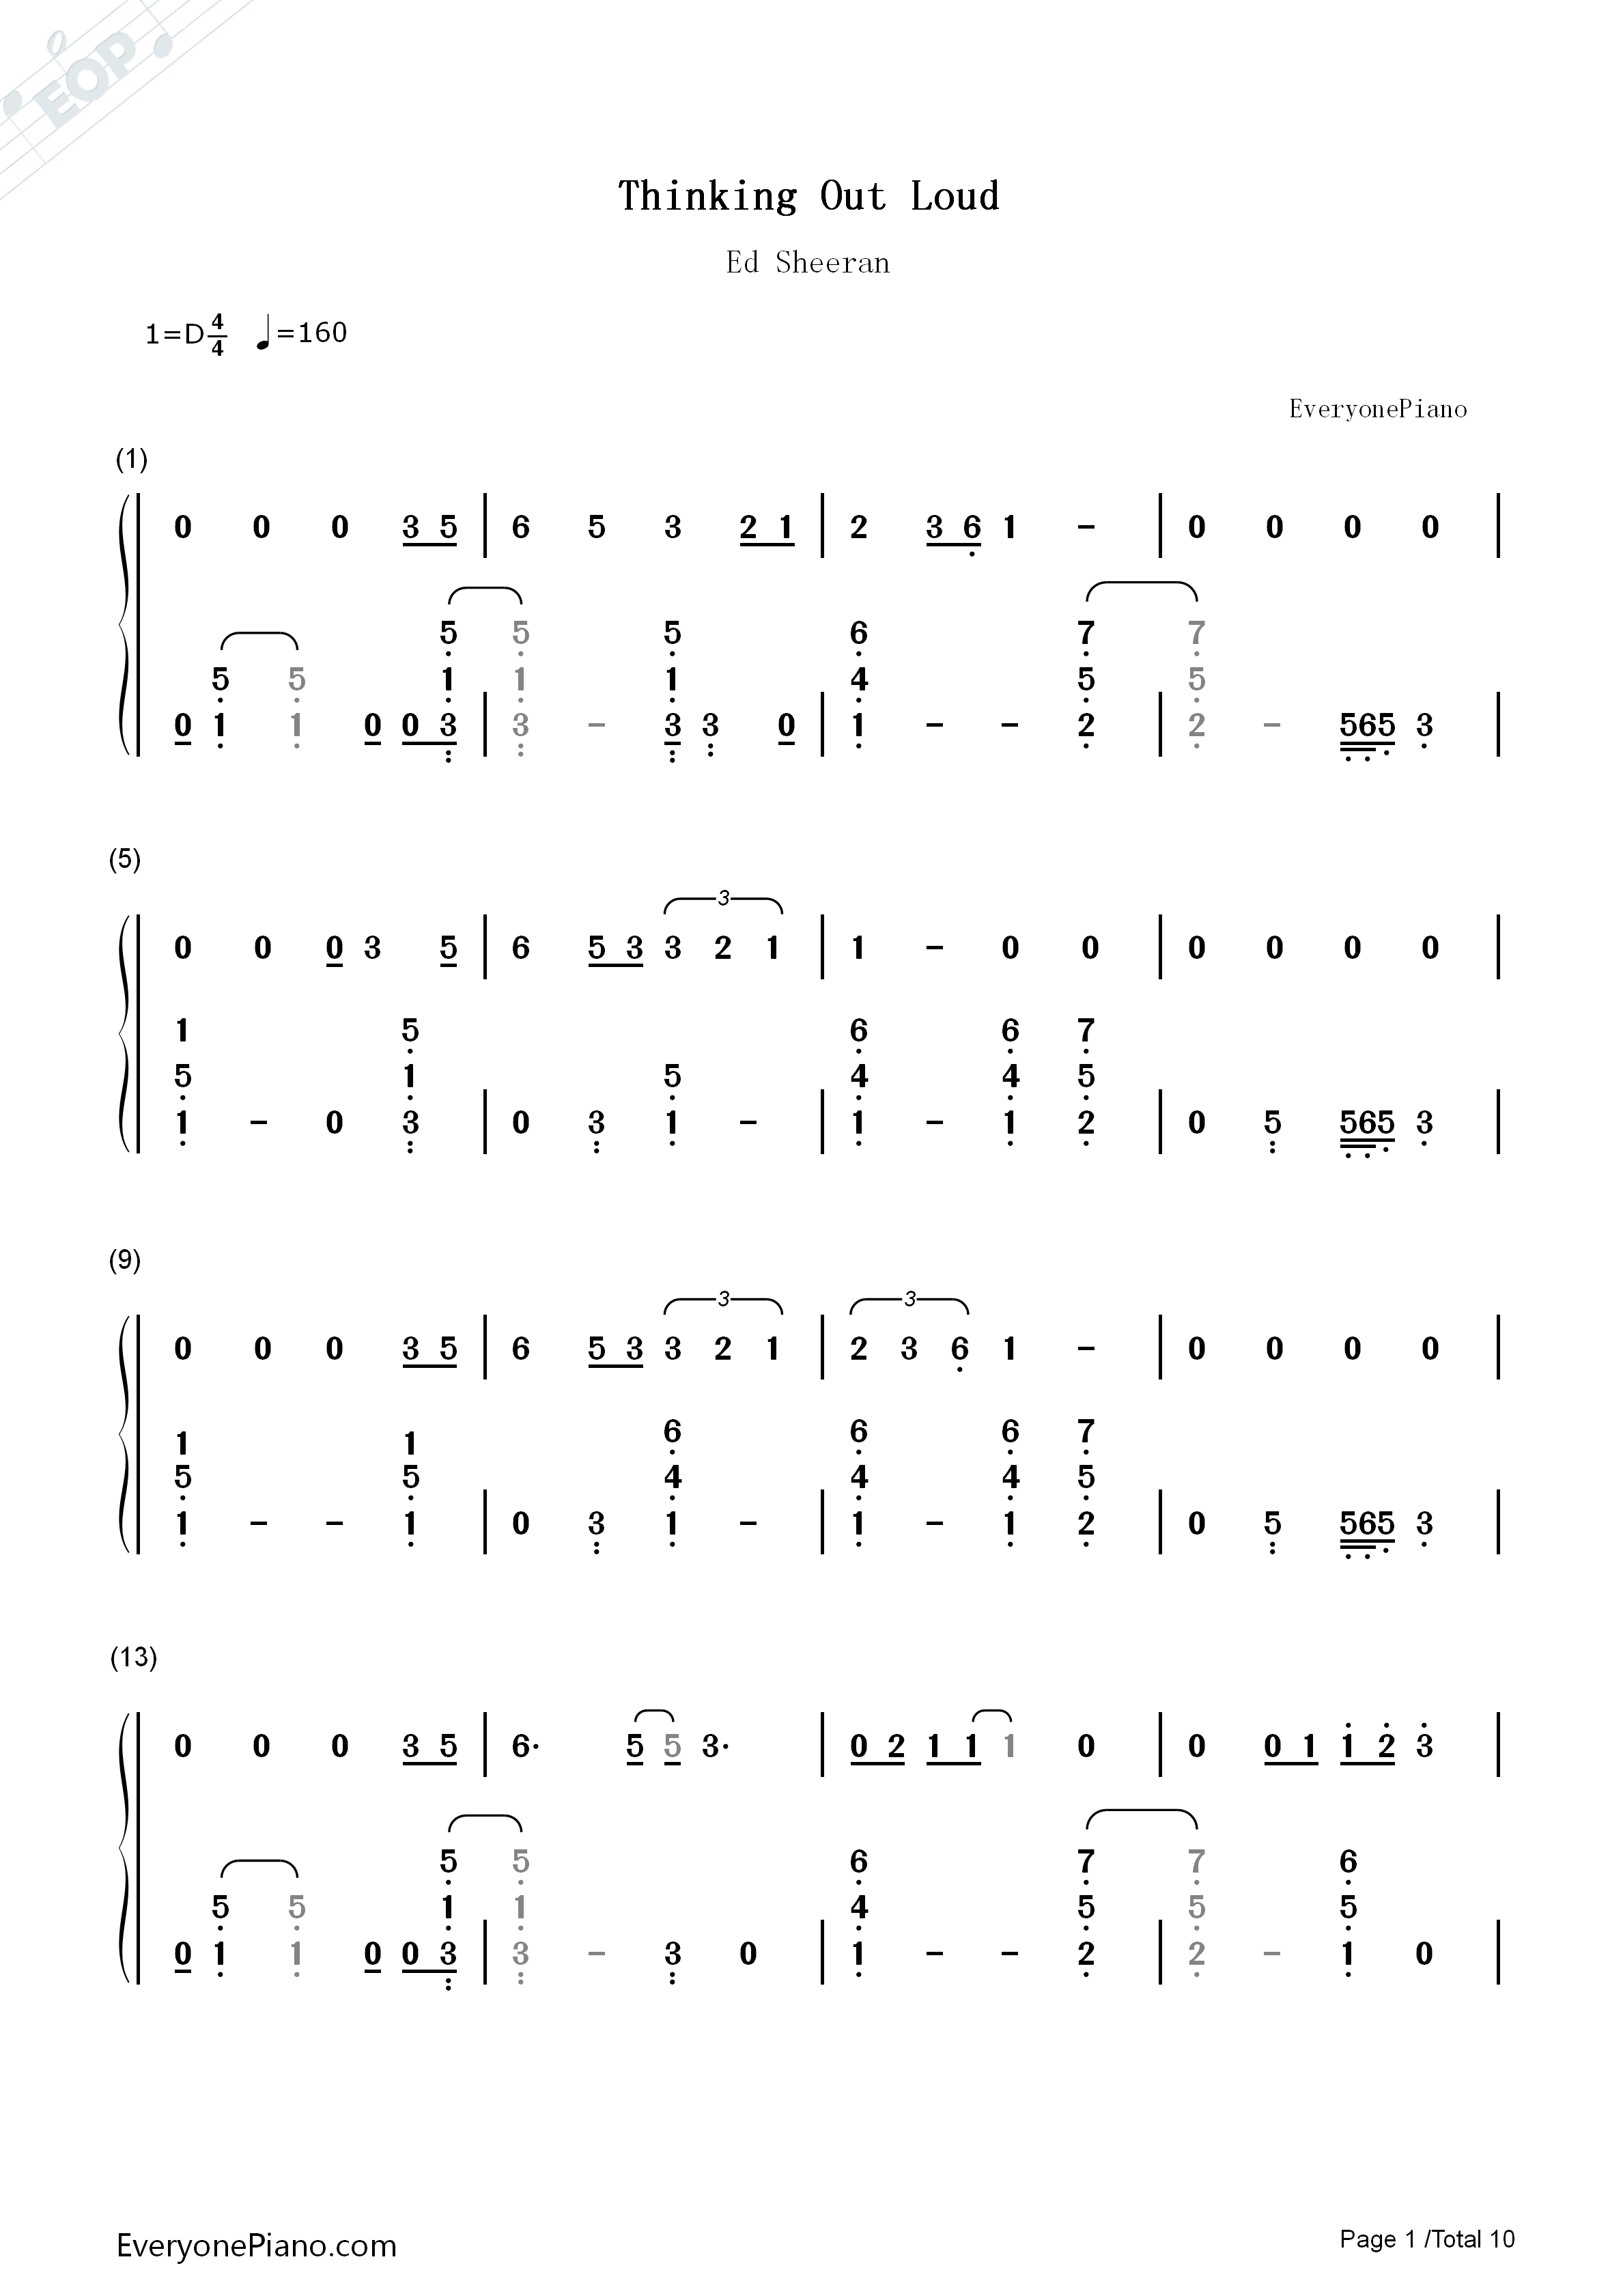 Ed Sheeran Thinking Out Loud Chords Thinking Out Loud Ed Sheeran Numbered Musical Notation Preview